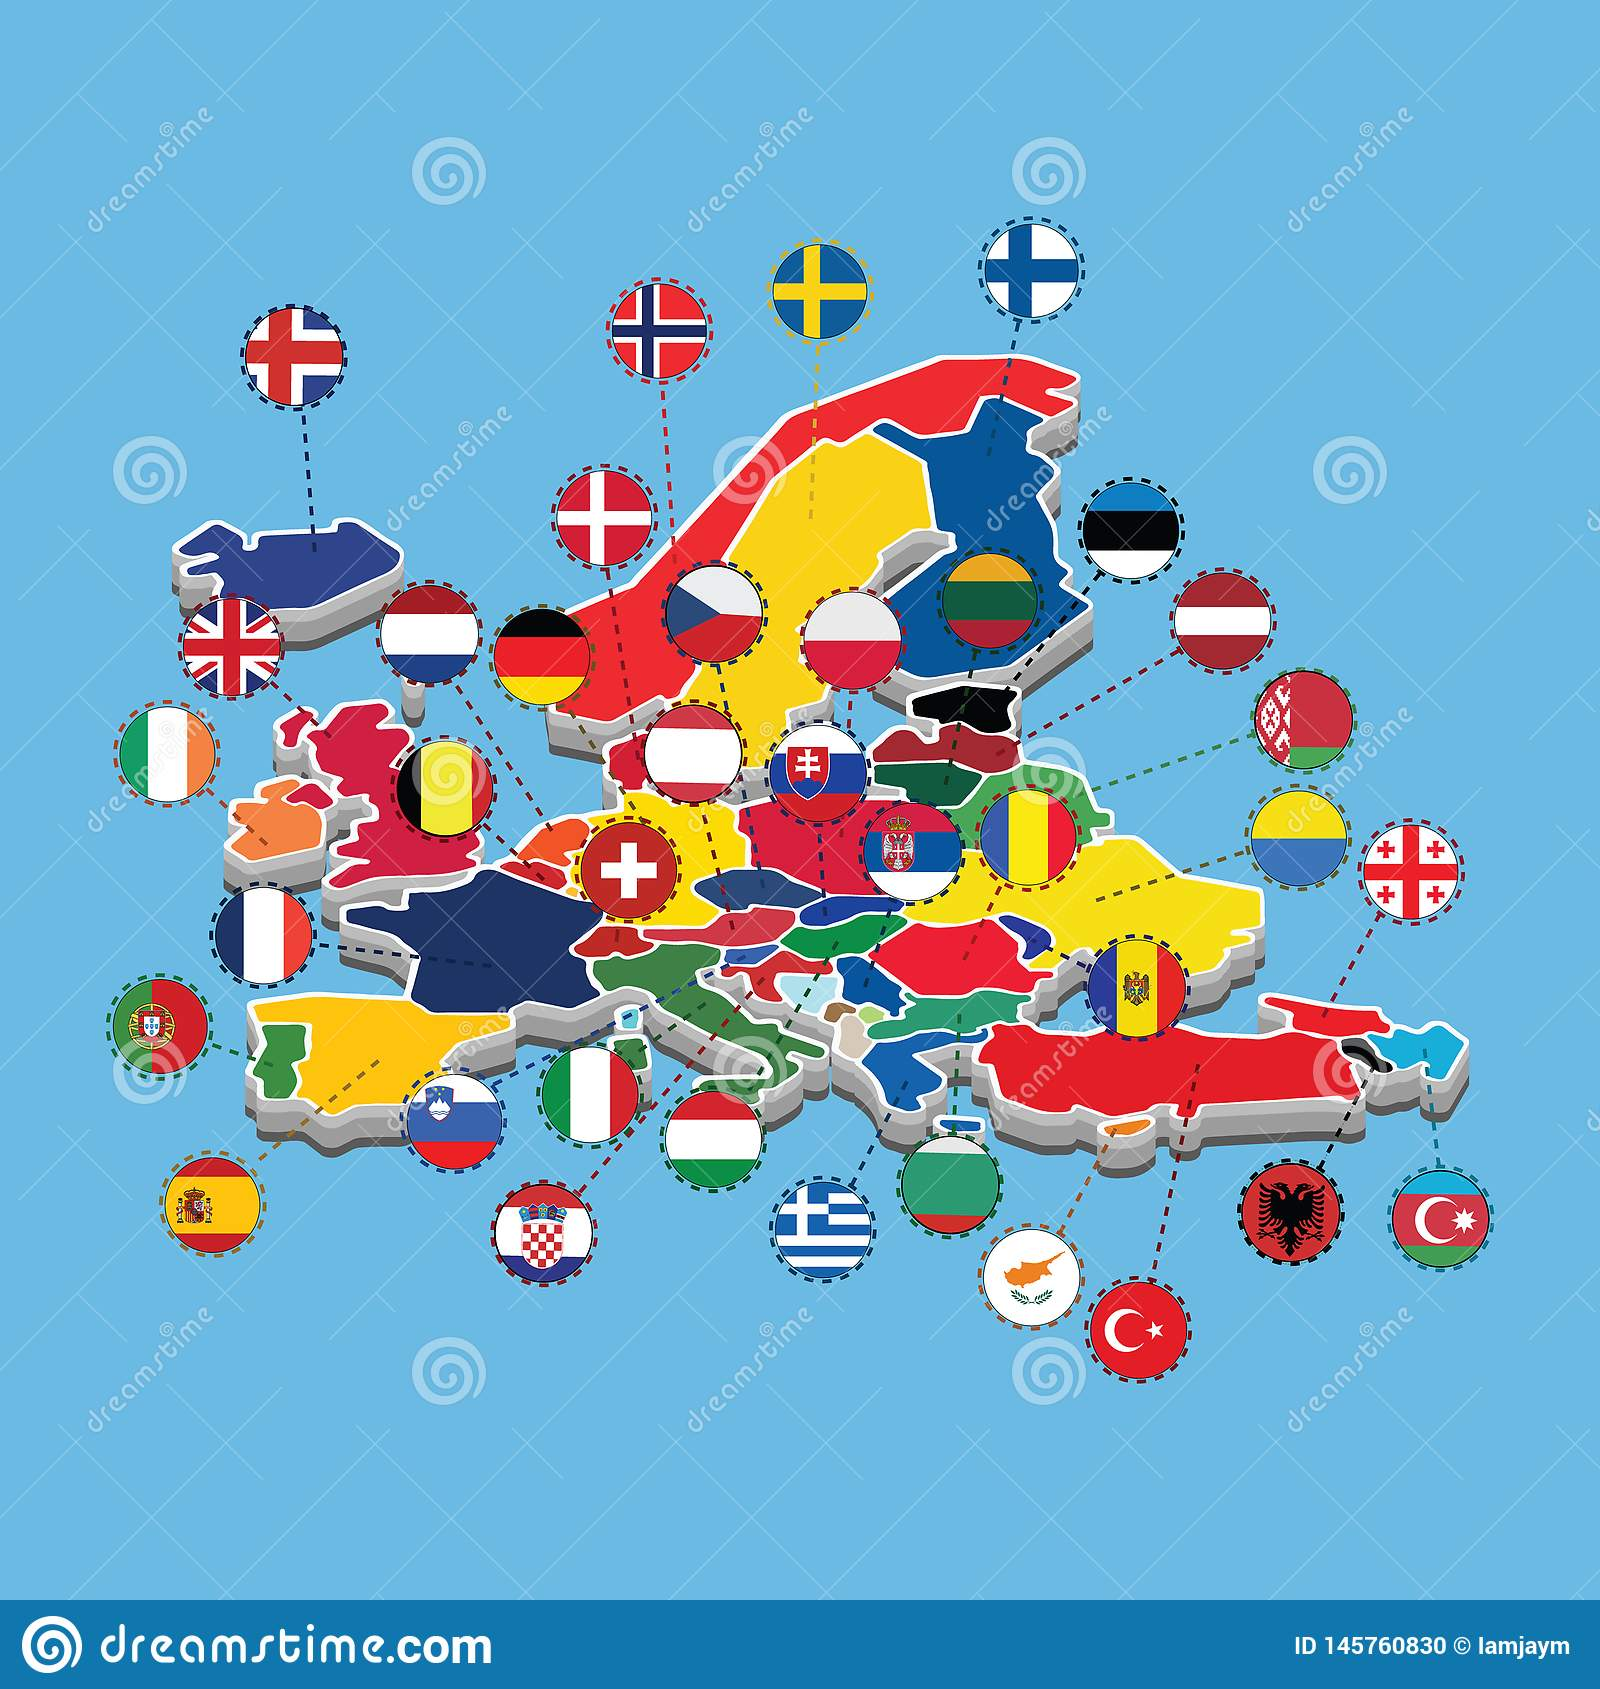 Map OF Western Europe Isometric Flag Vector Illustration Stock ... Euro Map on pyrenees mountains map, rotterdam map, japanese yen, french franc, new zealand dollar, greek drachma, seventeen provinces map, egyptian pound, world map, europe map, turkish lira, norwegian krone, euro sign, germany map, chinese yuan, singapore dollar, argentina map, europ map, portugal map, global currency map, mexican peso, italy map, swiss franc, instructional map, montenegro map, brazilian real, spain map, france map, european map, eurozone map, indian rupee, danish krone, swedish krona, russian ruble, danube river map, japan map, italian lira, norway rivers map,